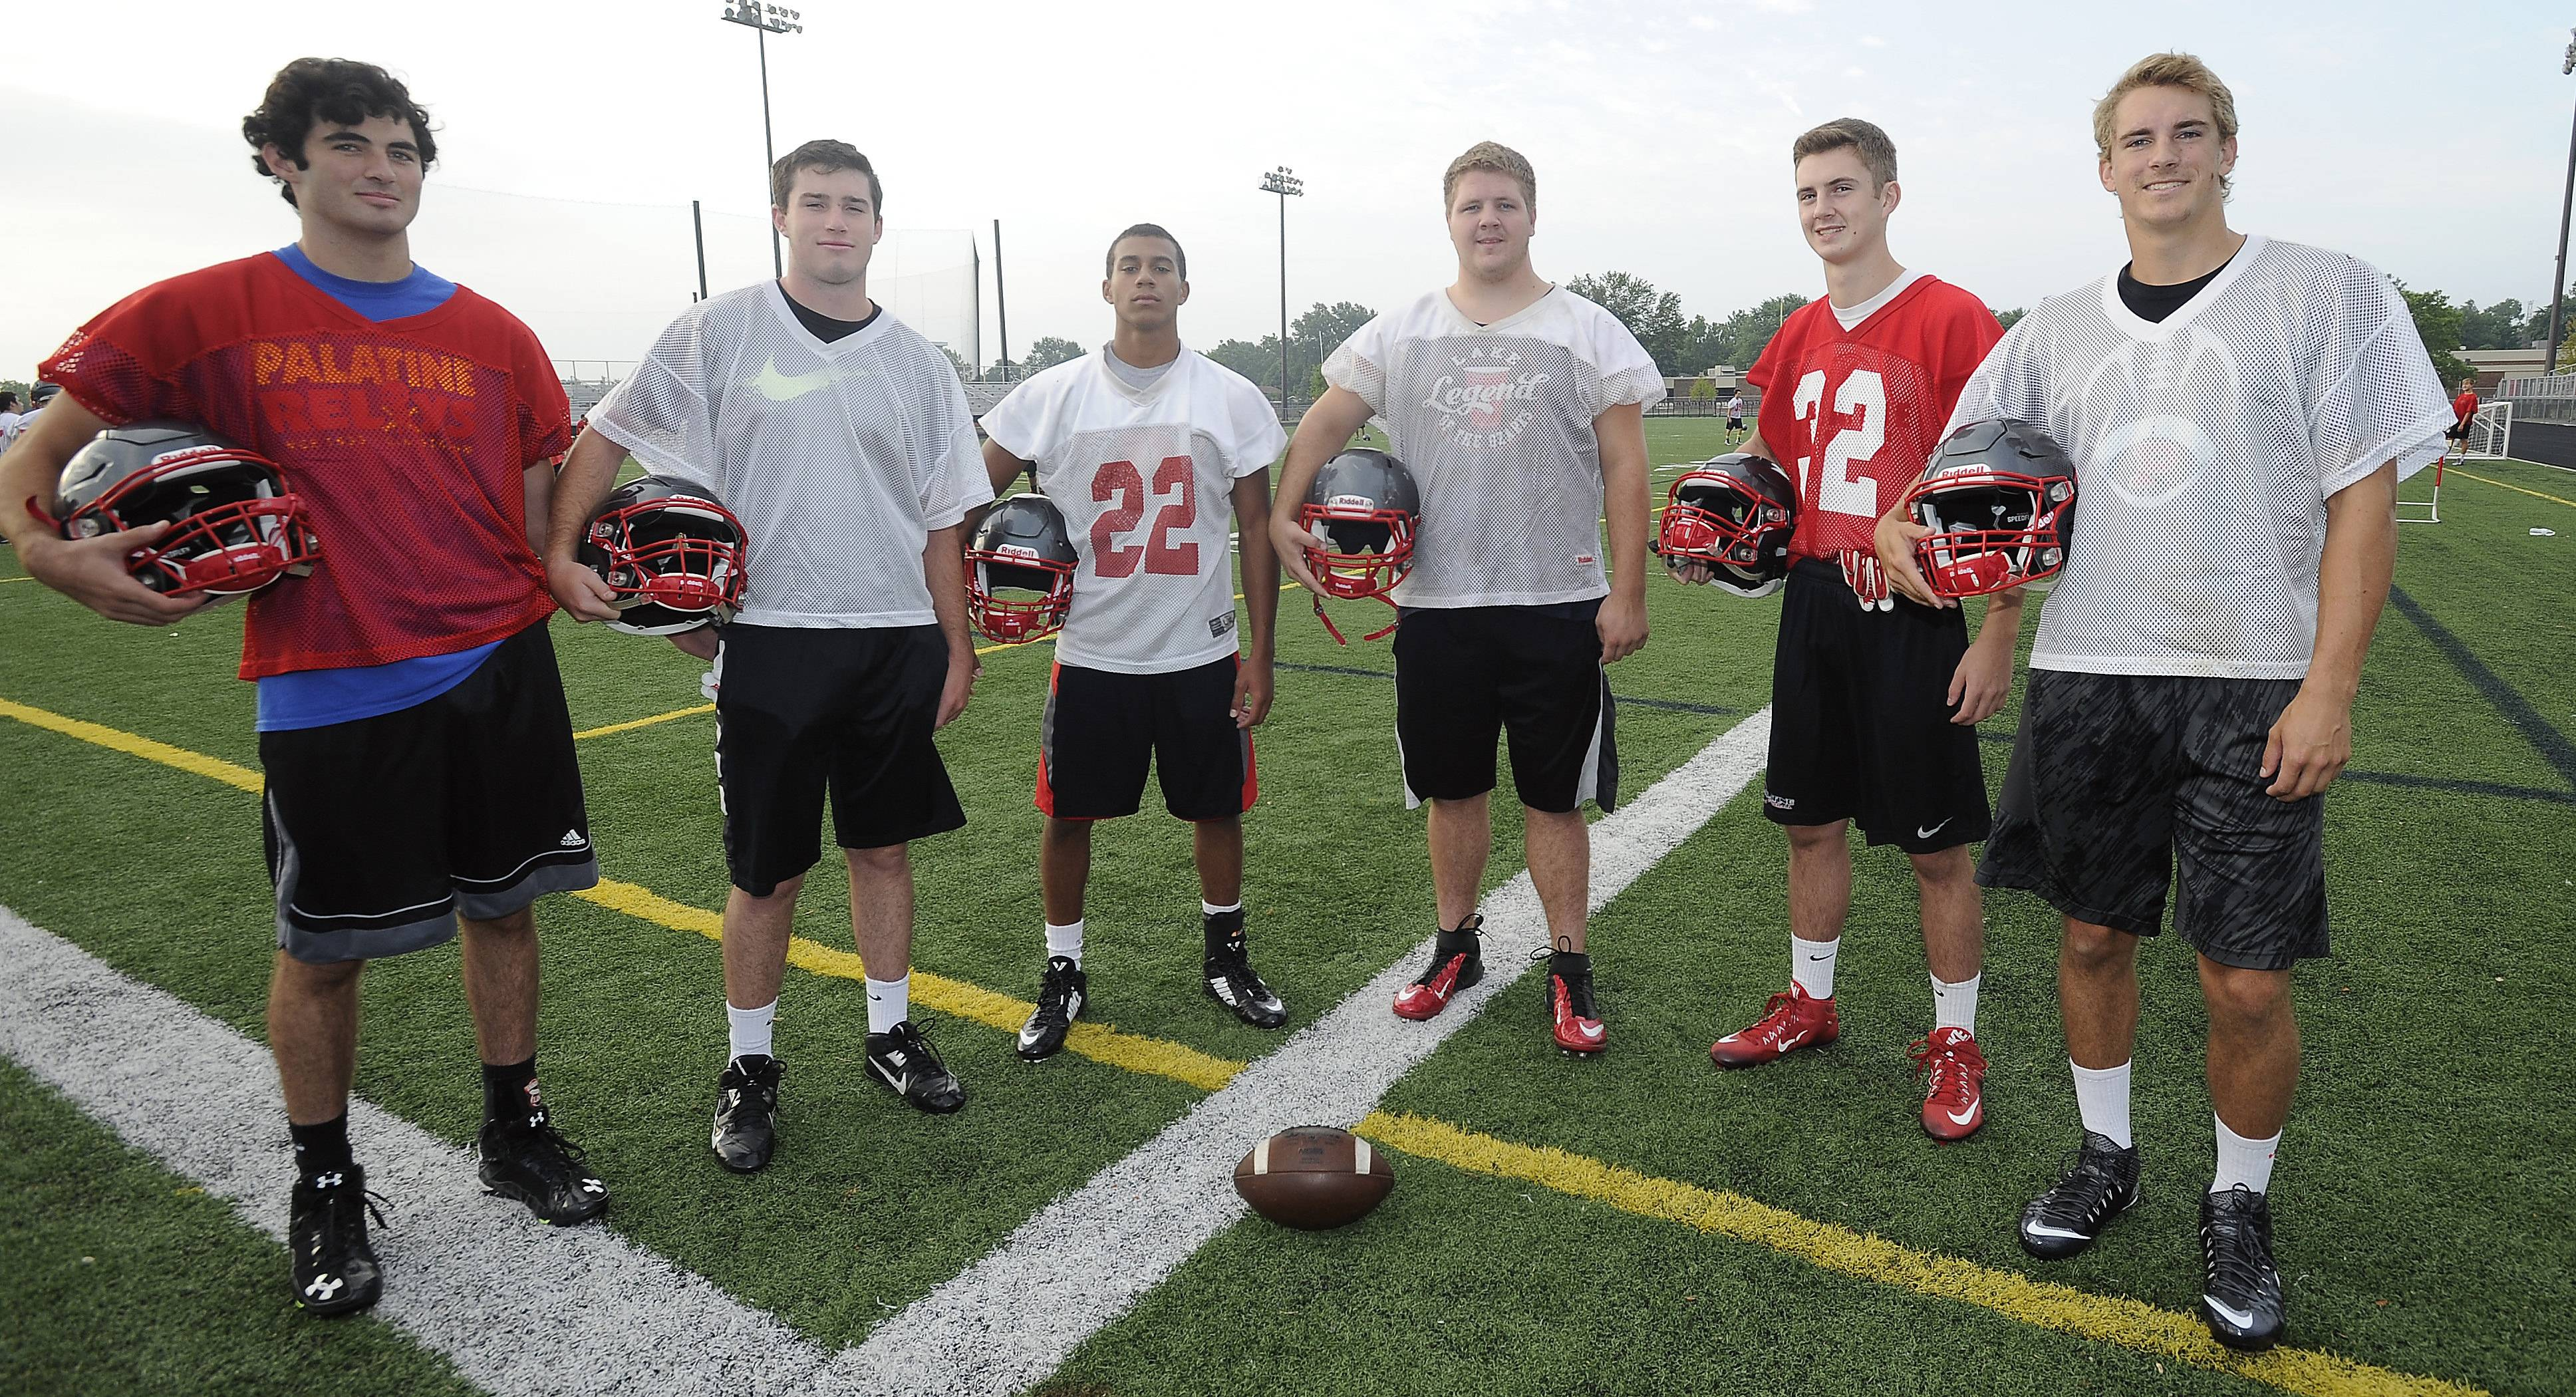 Palatine eager for West title defense